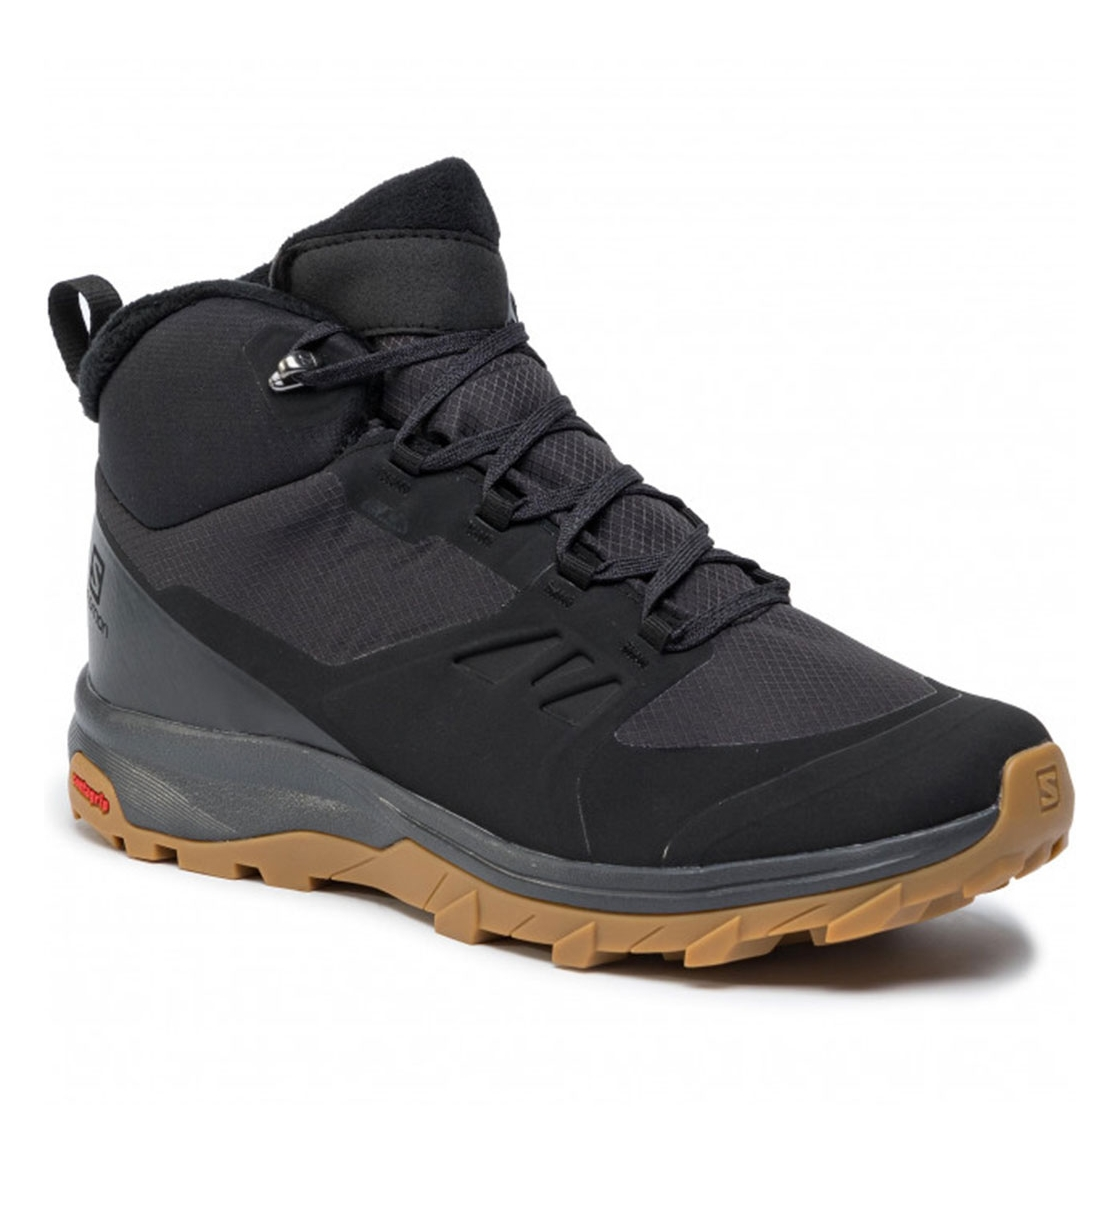 Salomon Ανδρικό Παπούτσι Trekking Fw19 Winter Shoes Outsnap Cswp 409220